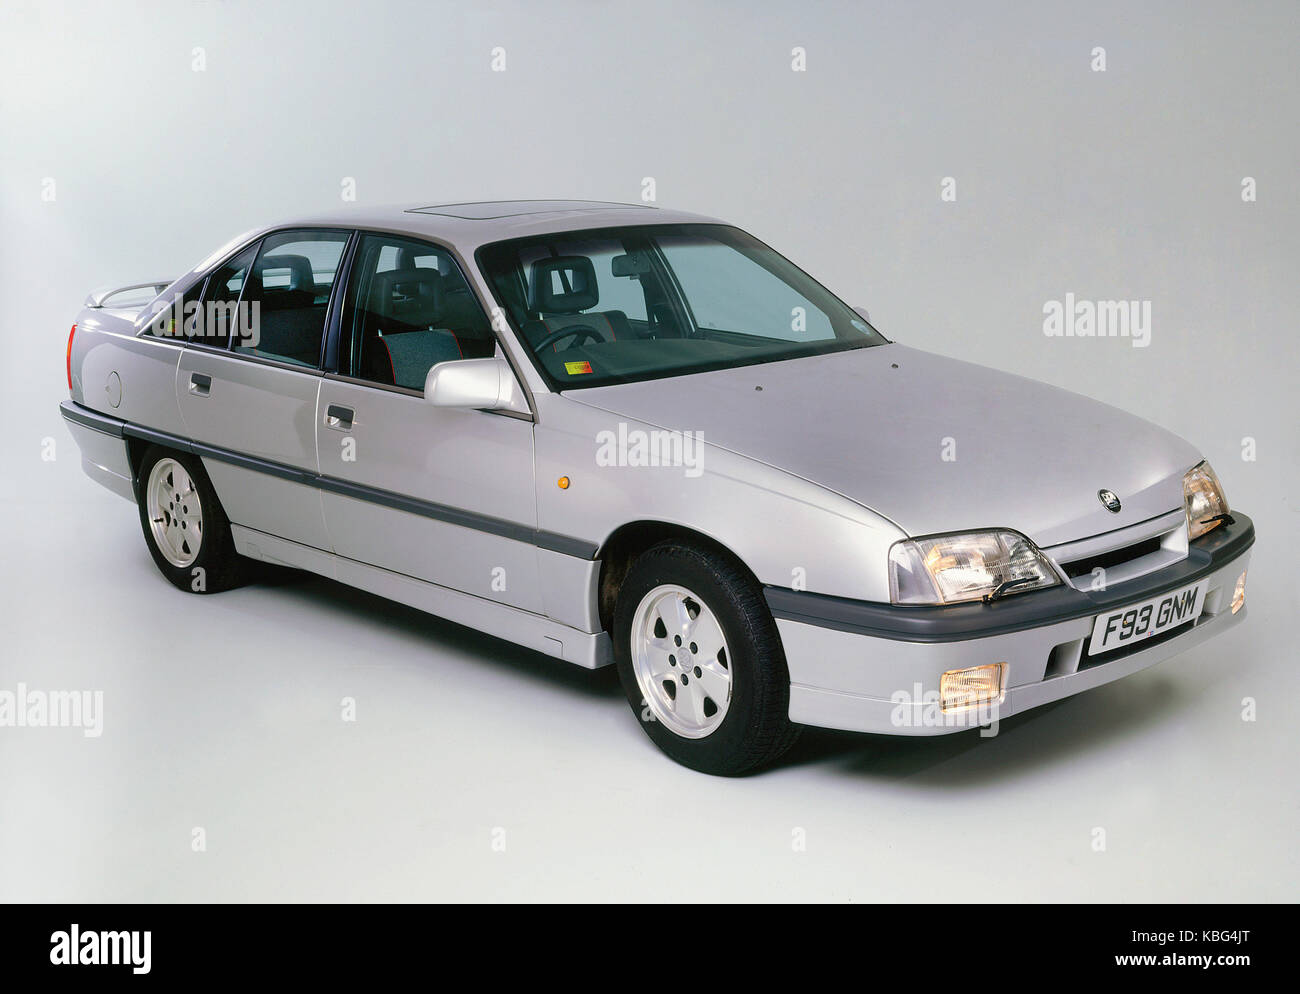 1989 Vauxhall Carlton 3.0 GSi Photo Stock